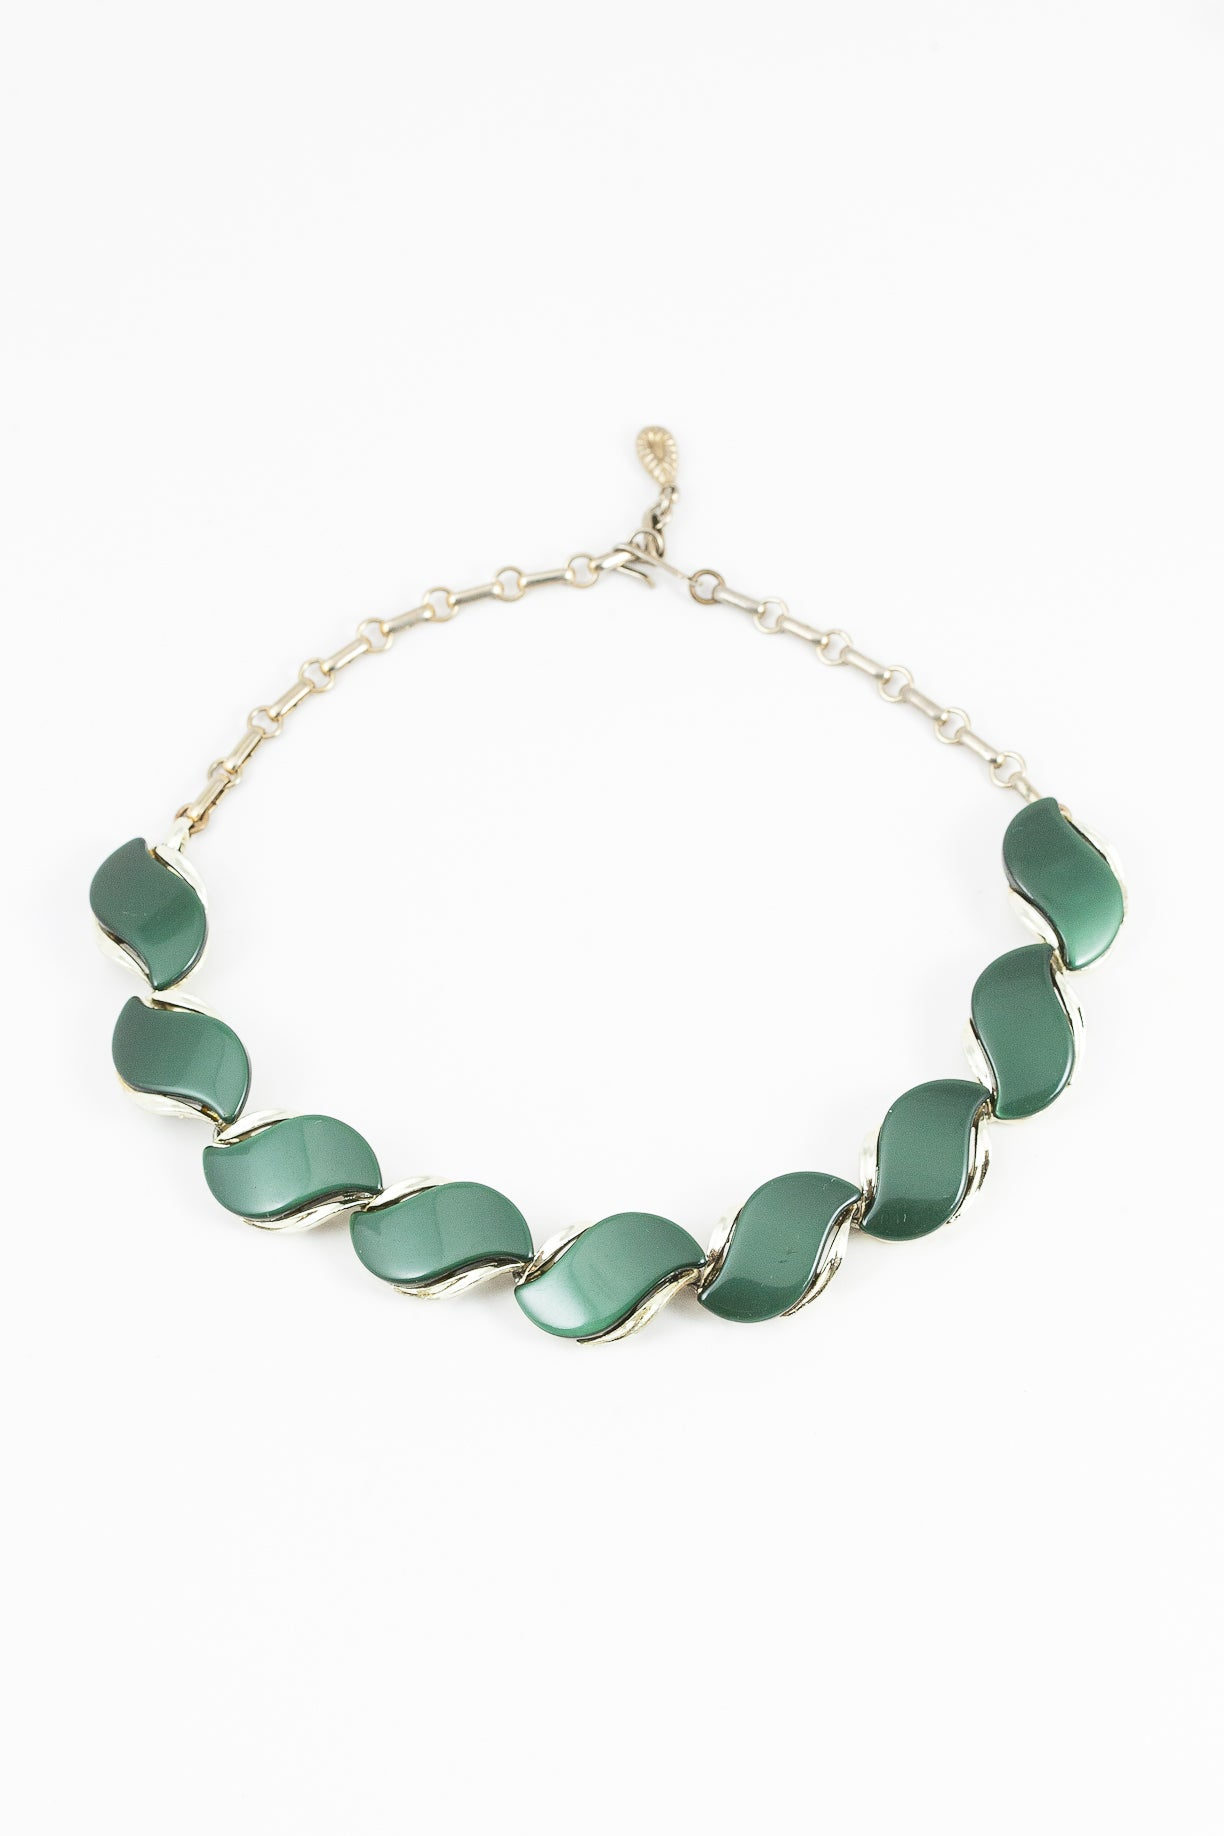 50's__Vintage__Green Lucite Statement Necklace